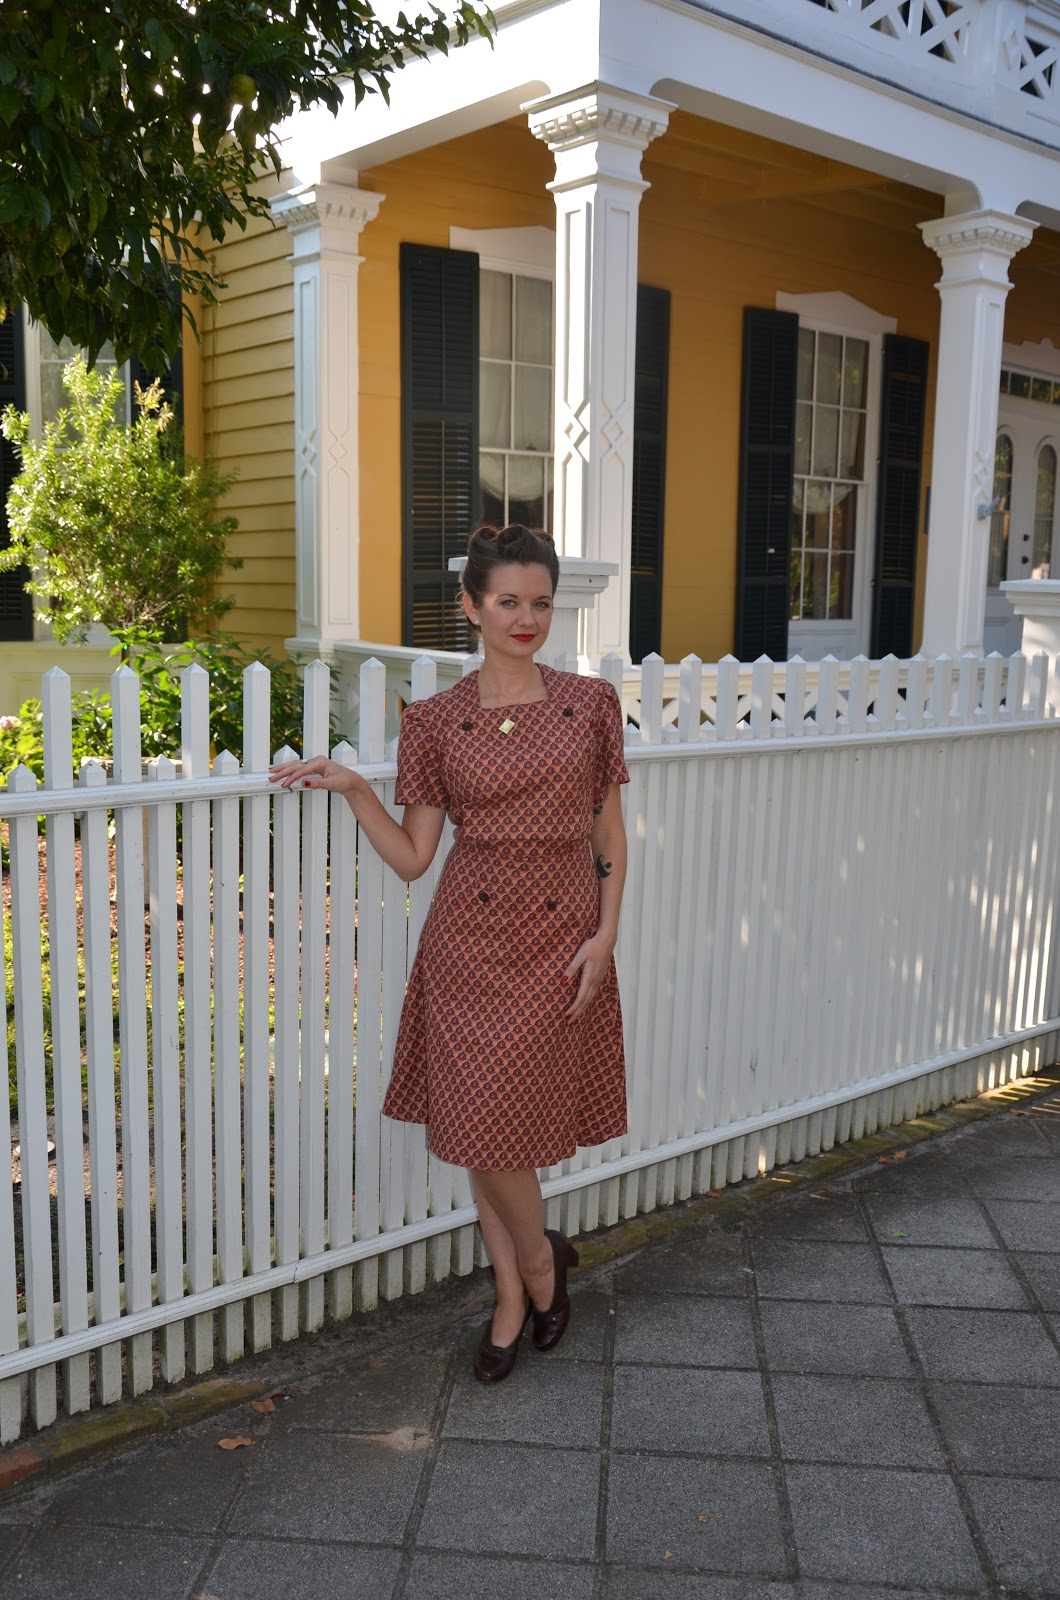 vintage sewing vintage lovin gal it is a truly beautiful place and makes me proud to say that pensacola is my hometown